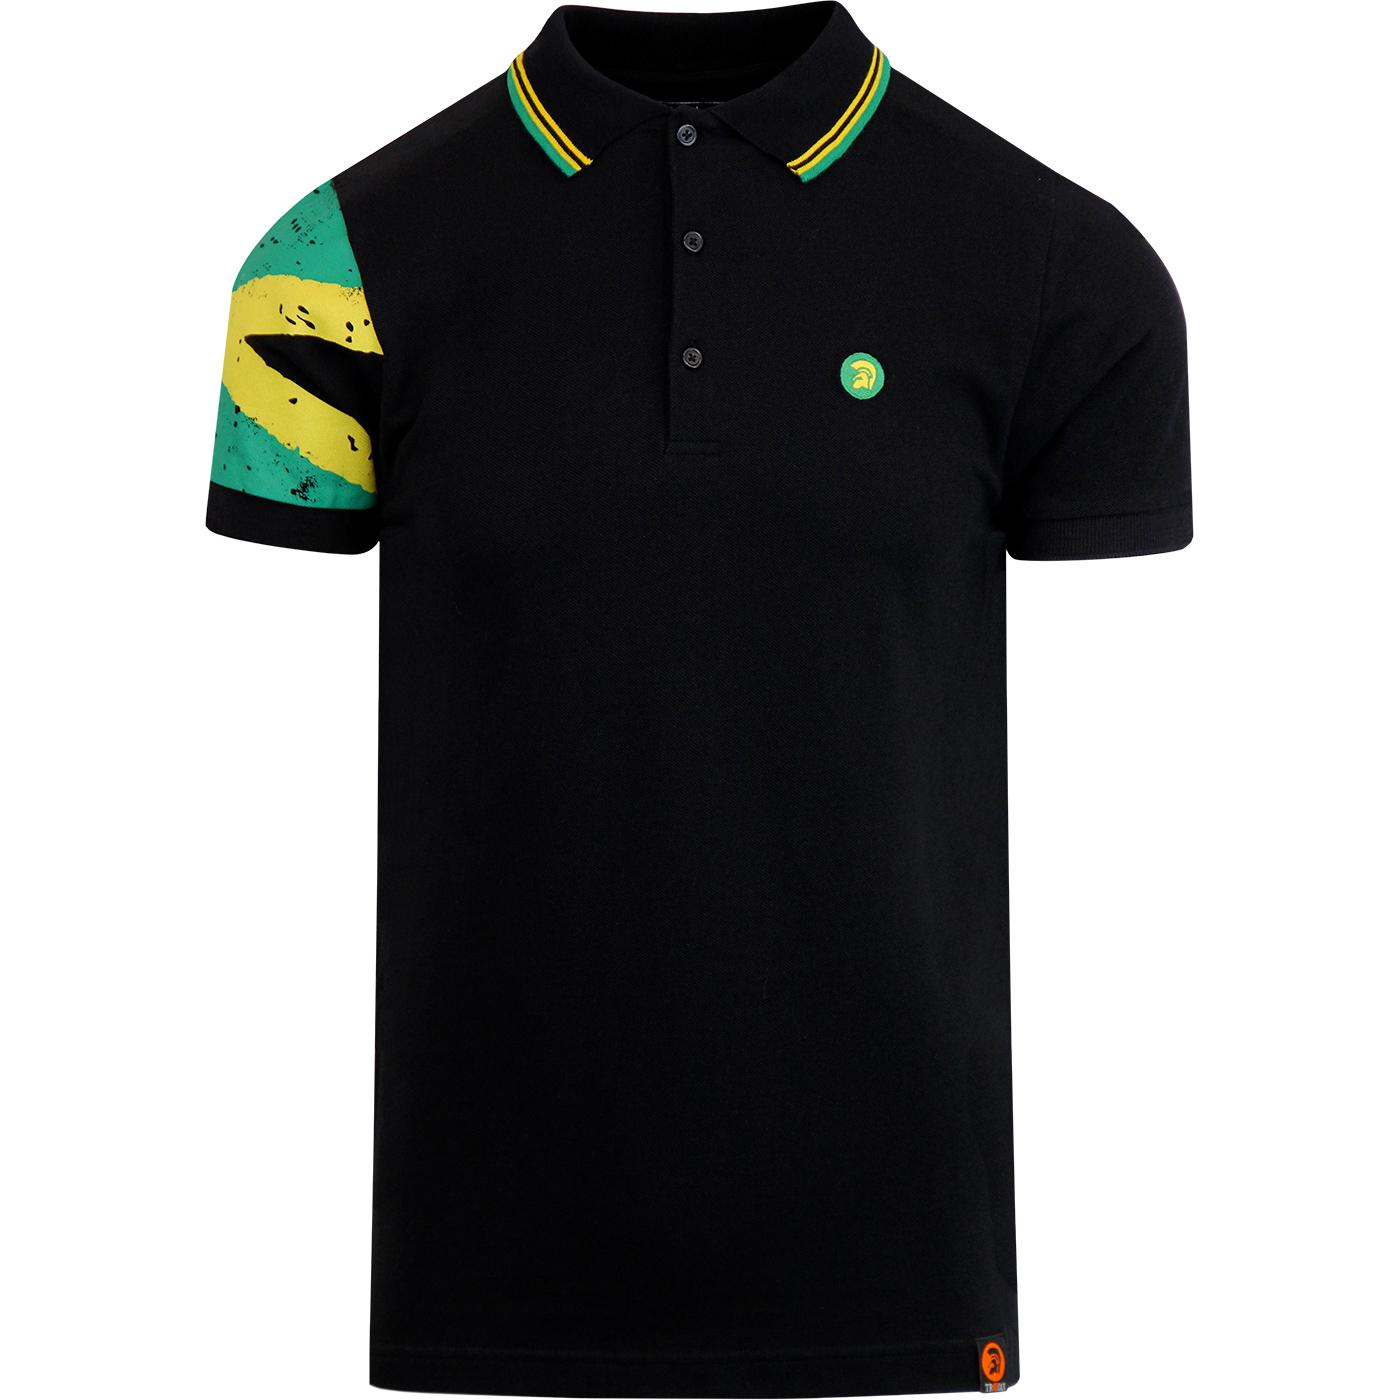 TROJAN RECORDS Mod Ska Jamaica Flag Sleeve Polo